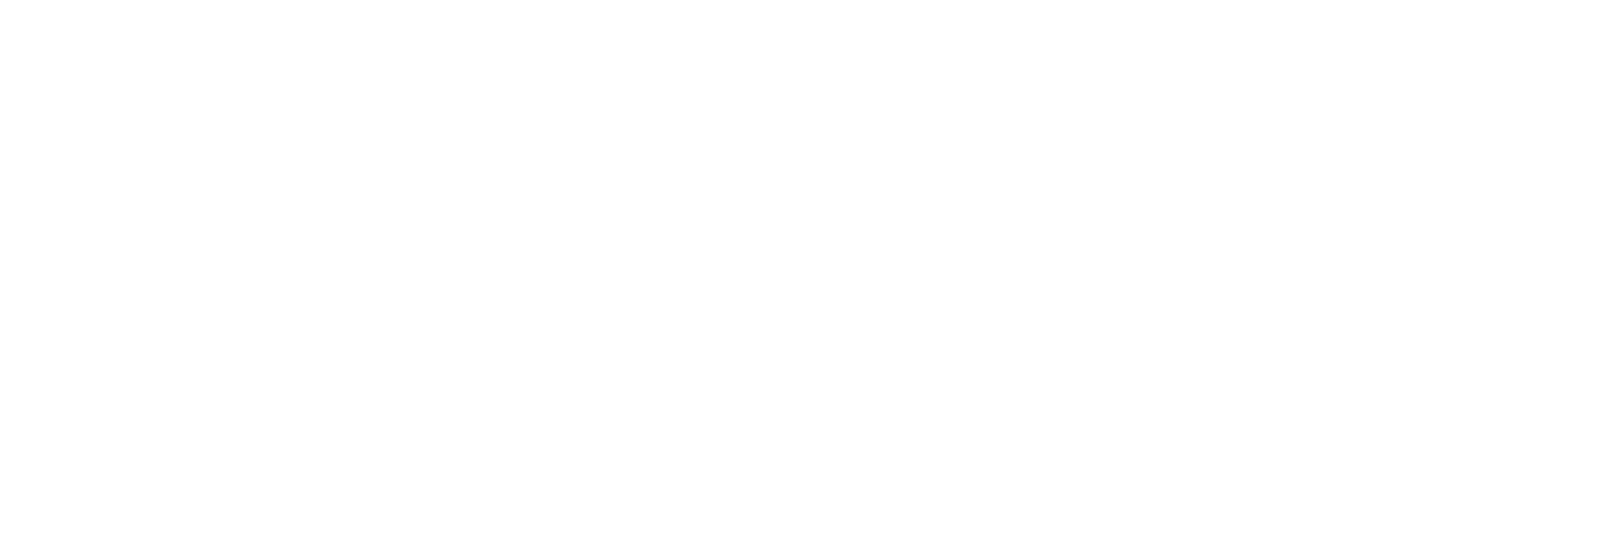 The Thomas Lab